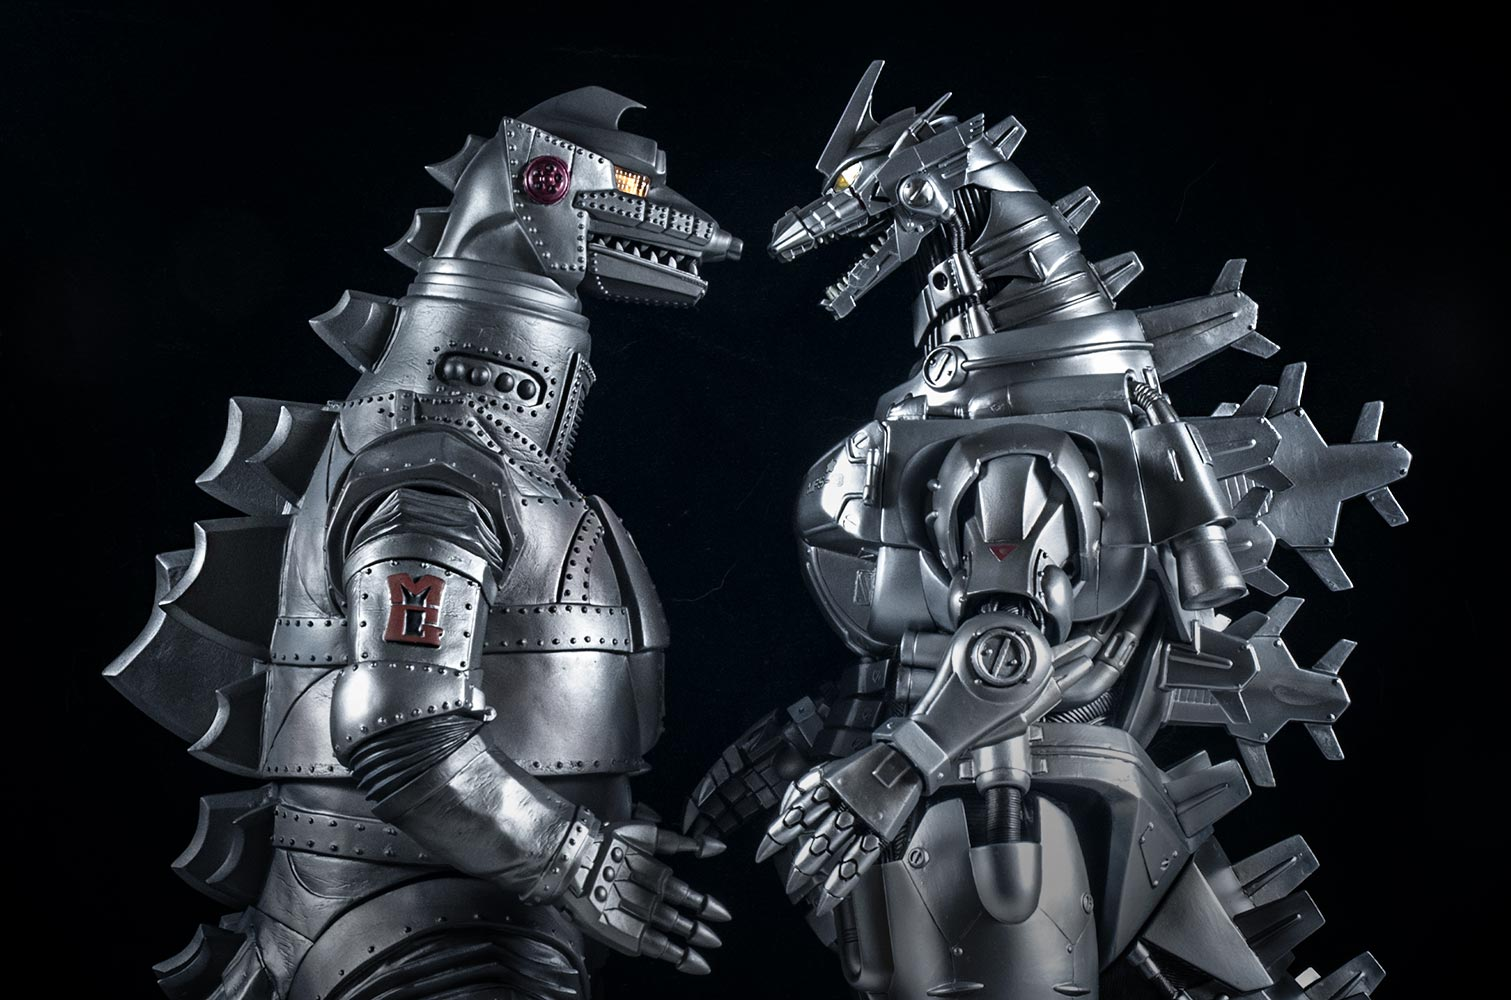 REVIEW X Plus Toho 30cm Series Mechagodzilla 1974 Diamond Reissue 1511x1000